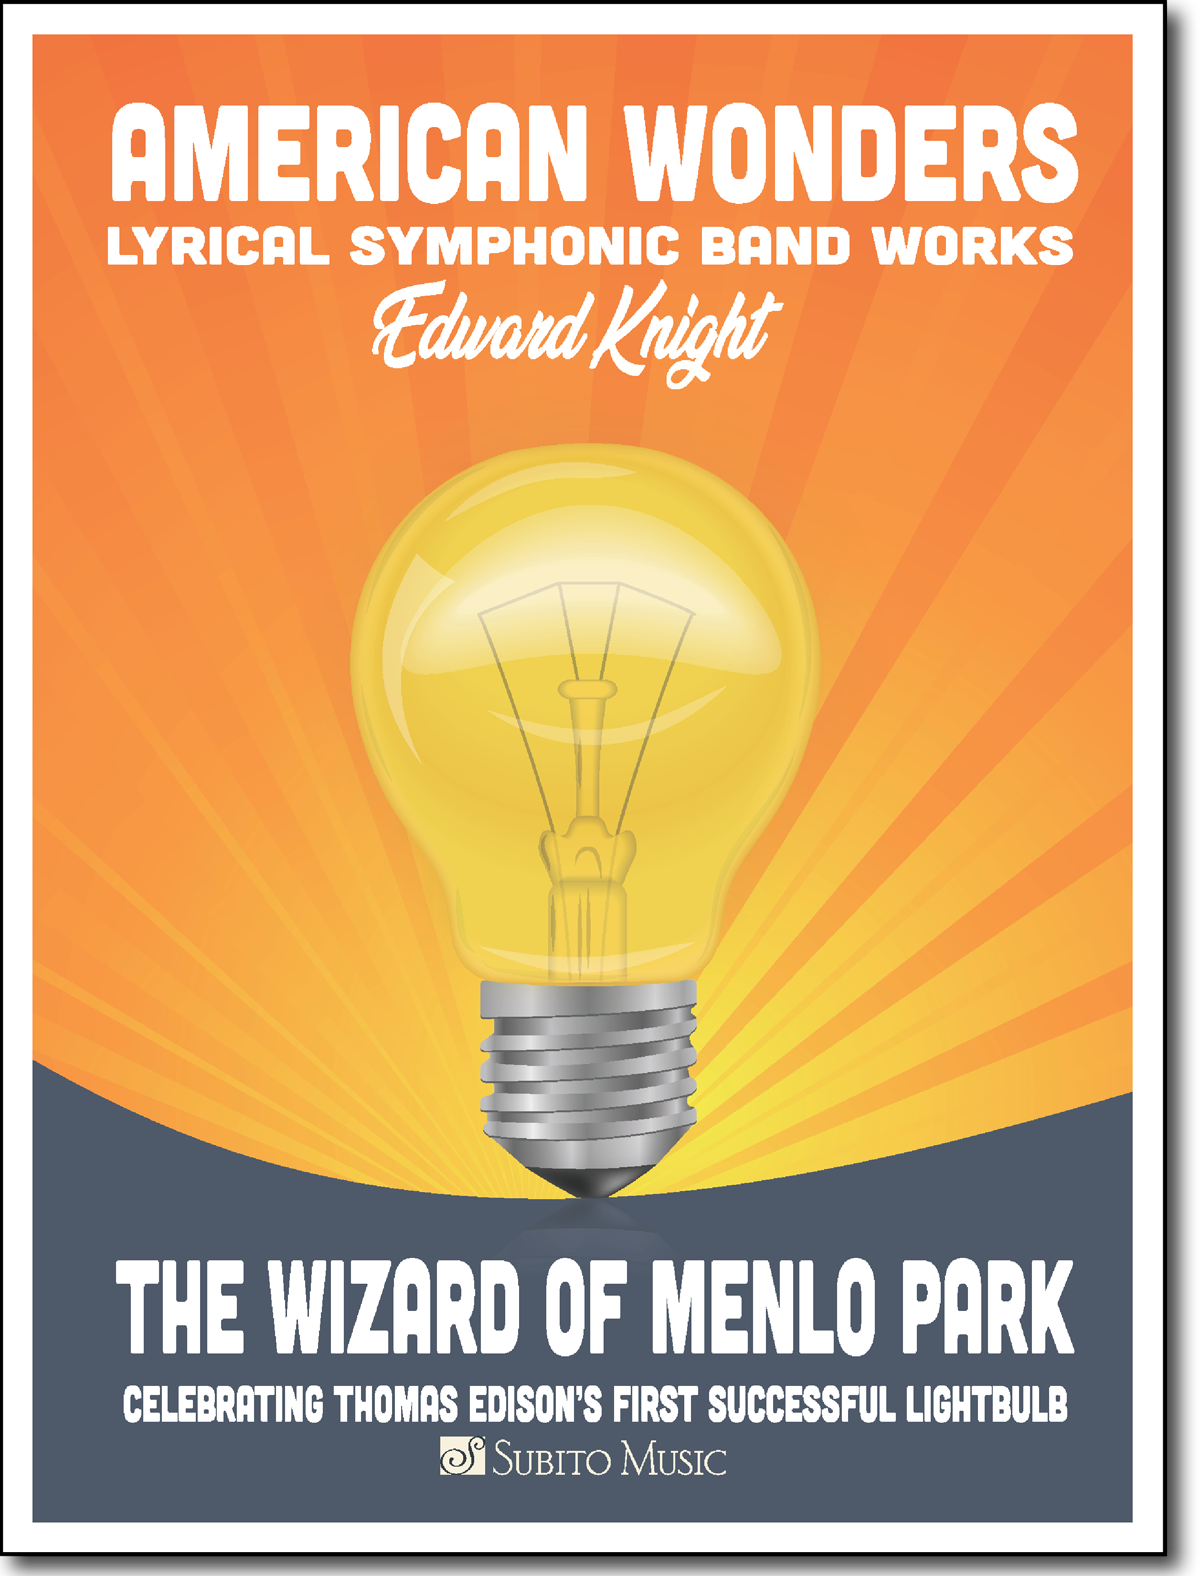 American Wonders: The Wizard of Menlo Park for Concert Band